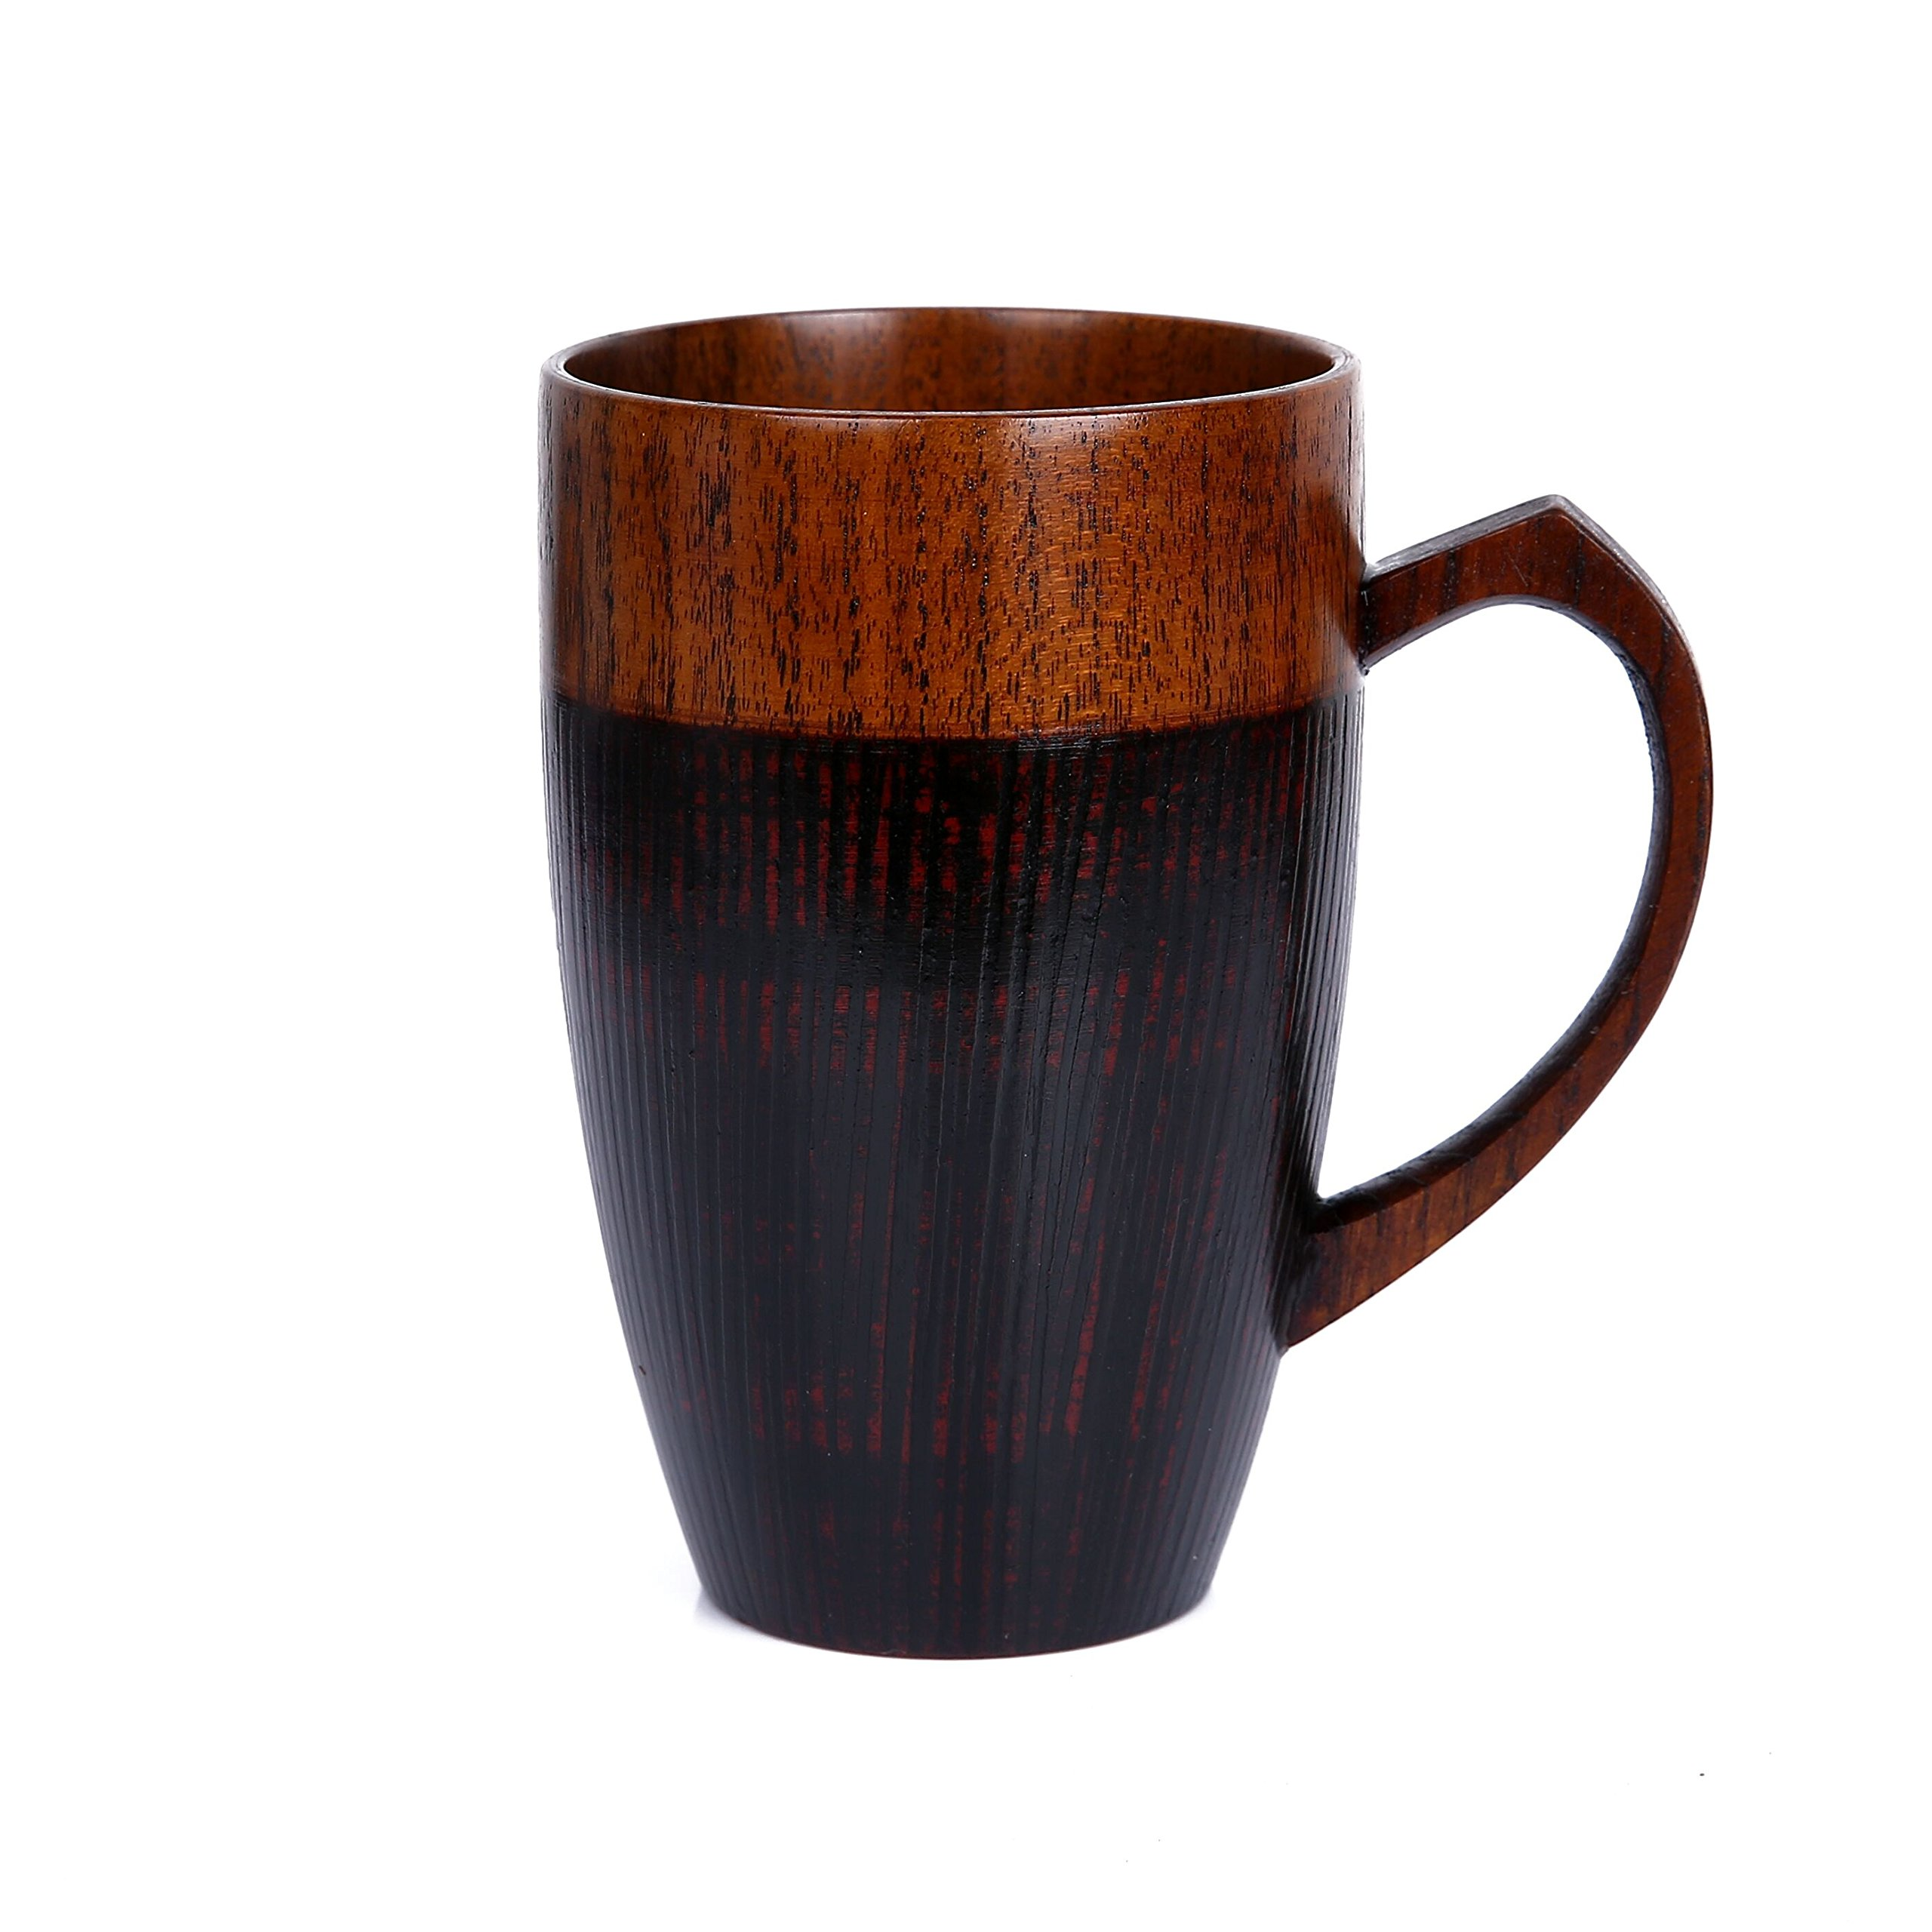 WOOD MEETS COLOR Mug Cup Handmade Wood with Heart Handle(Black 10 OZ) by WOOD MEETS COLOR (Image #1)